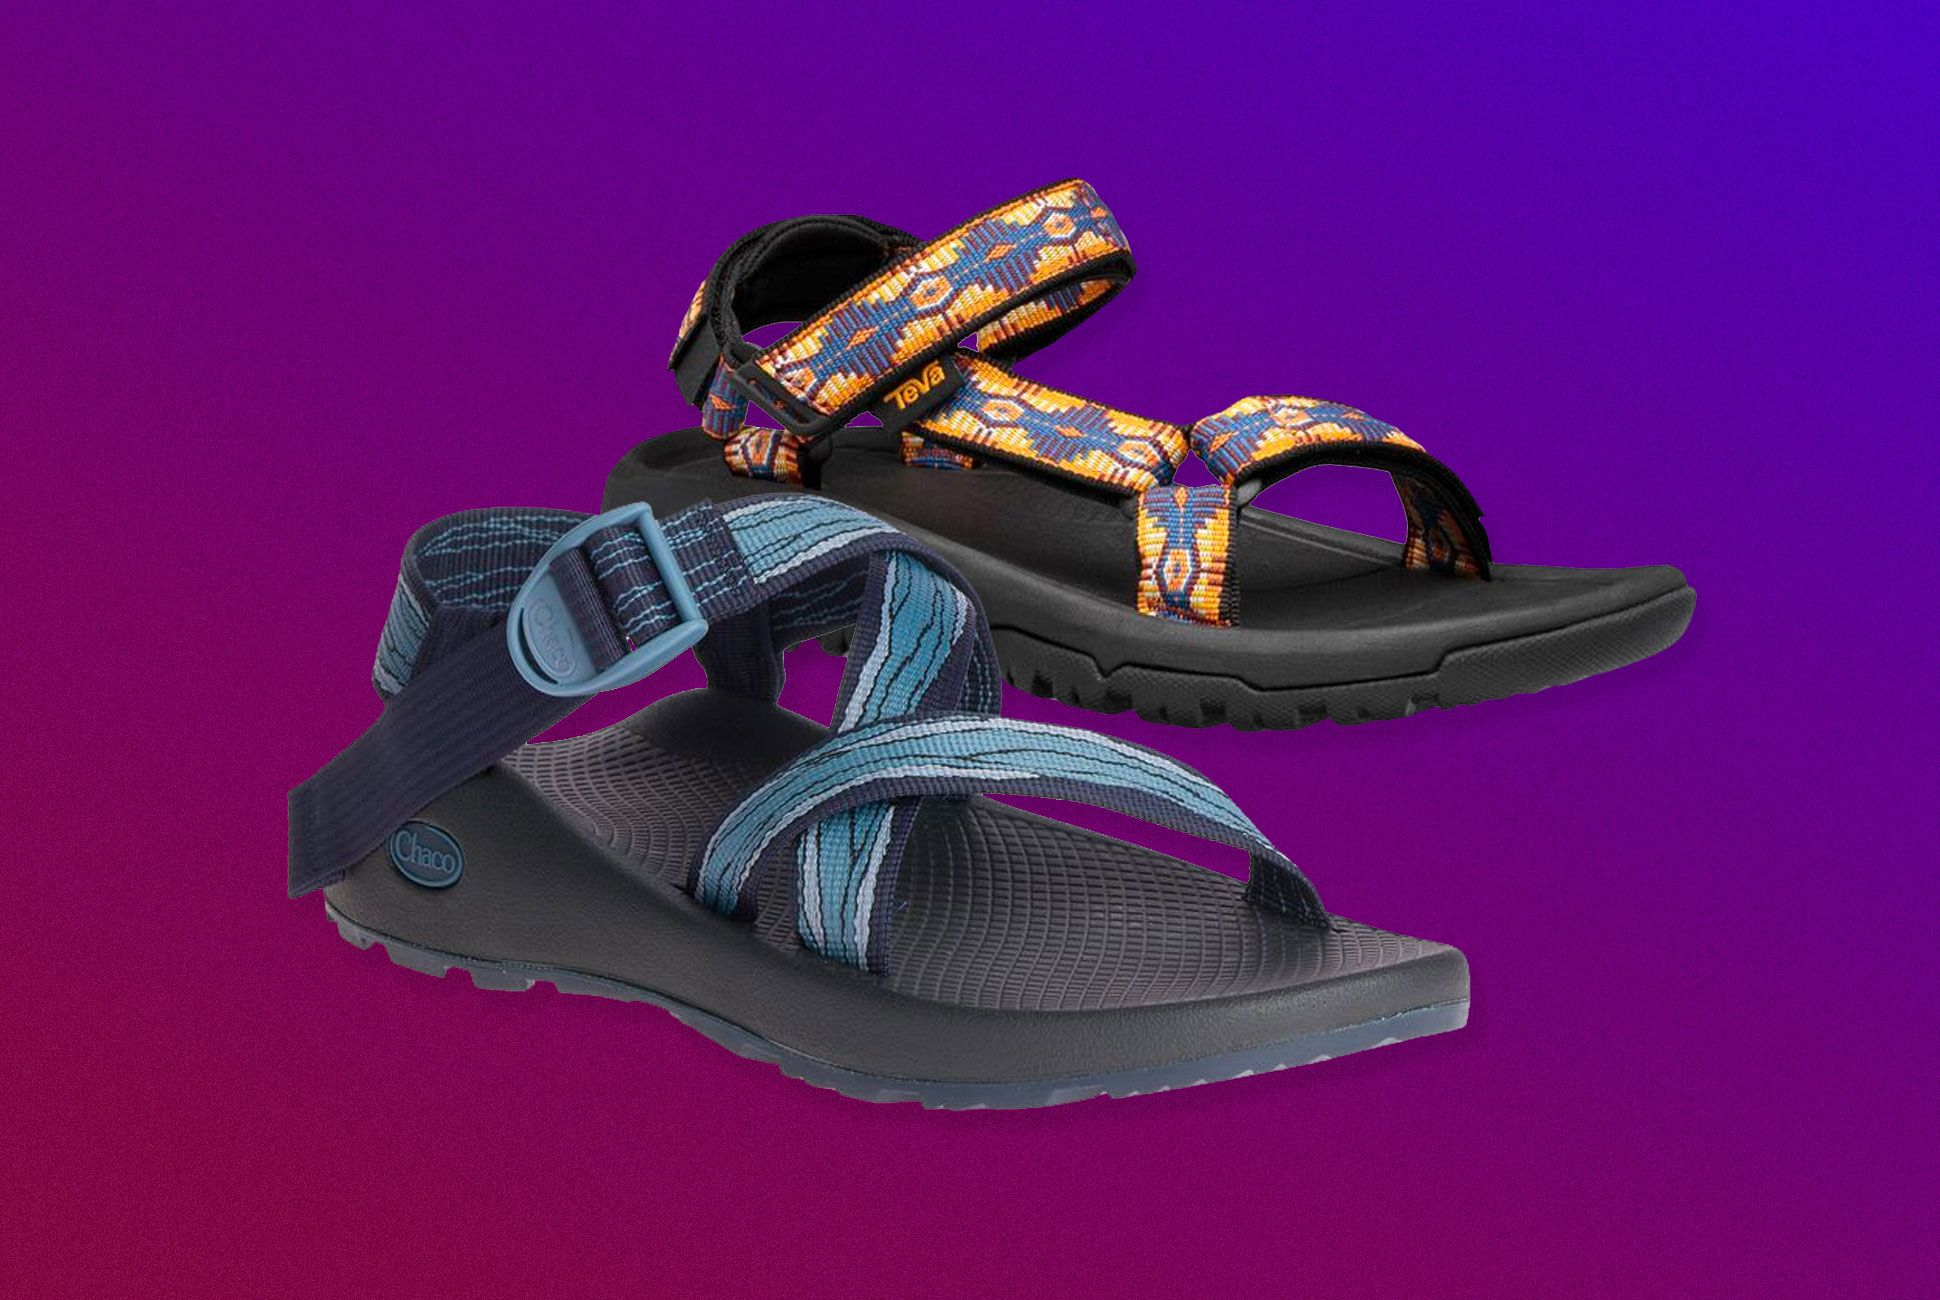 Sandals Should You Buy? Chaco or Teva